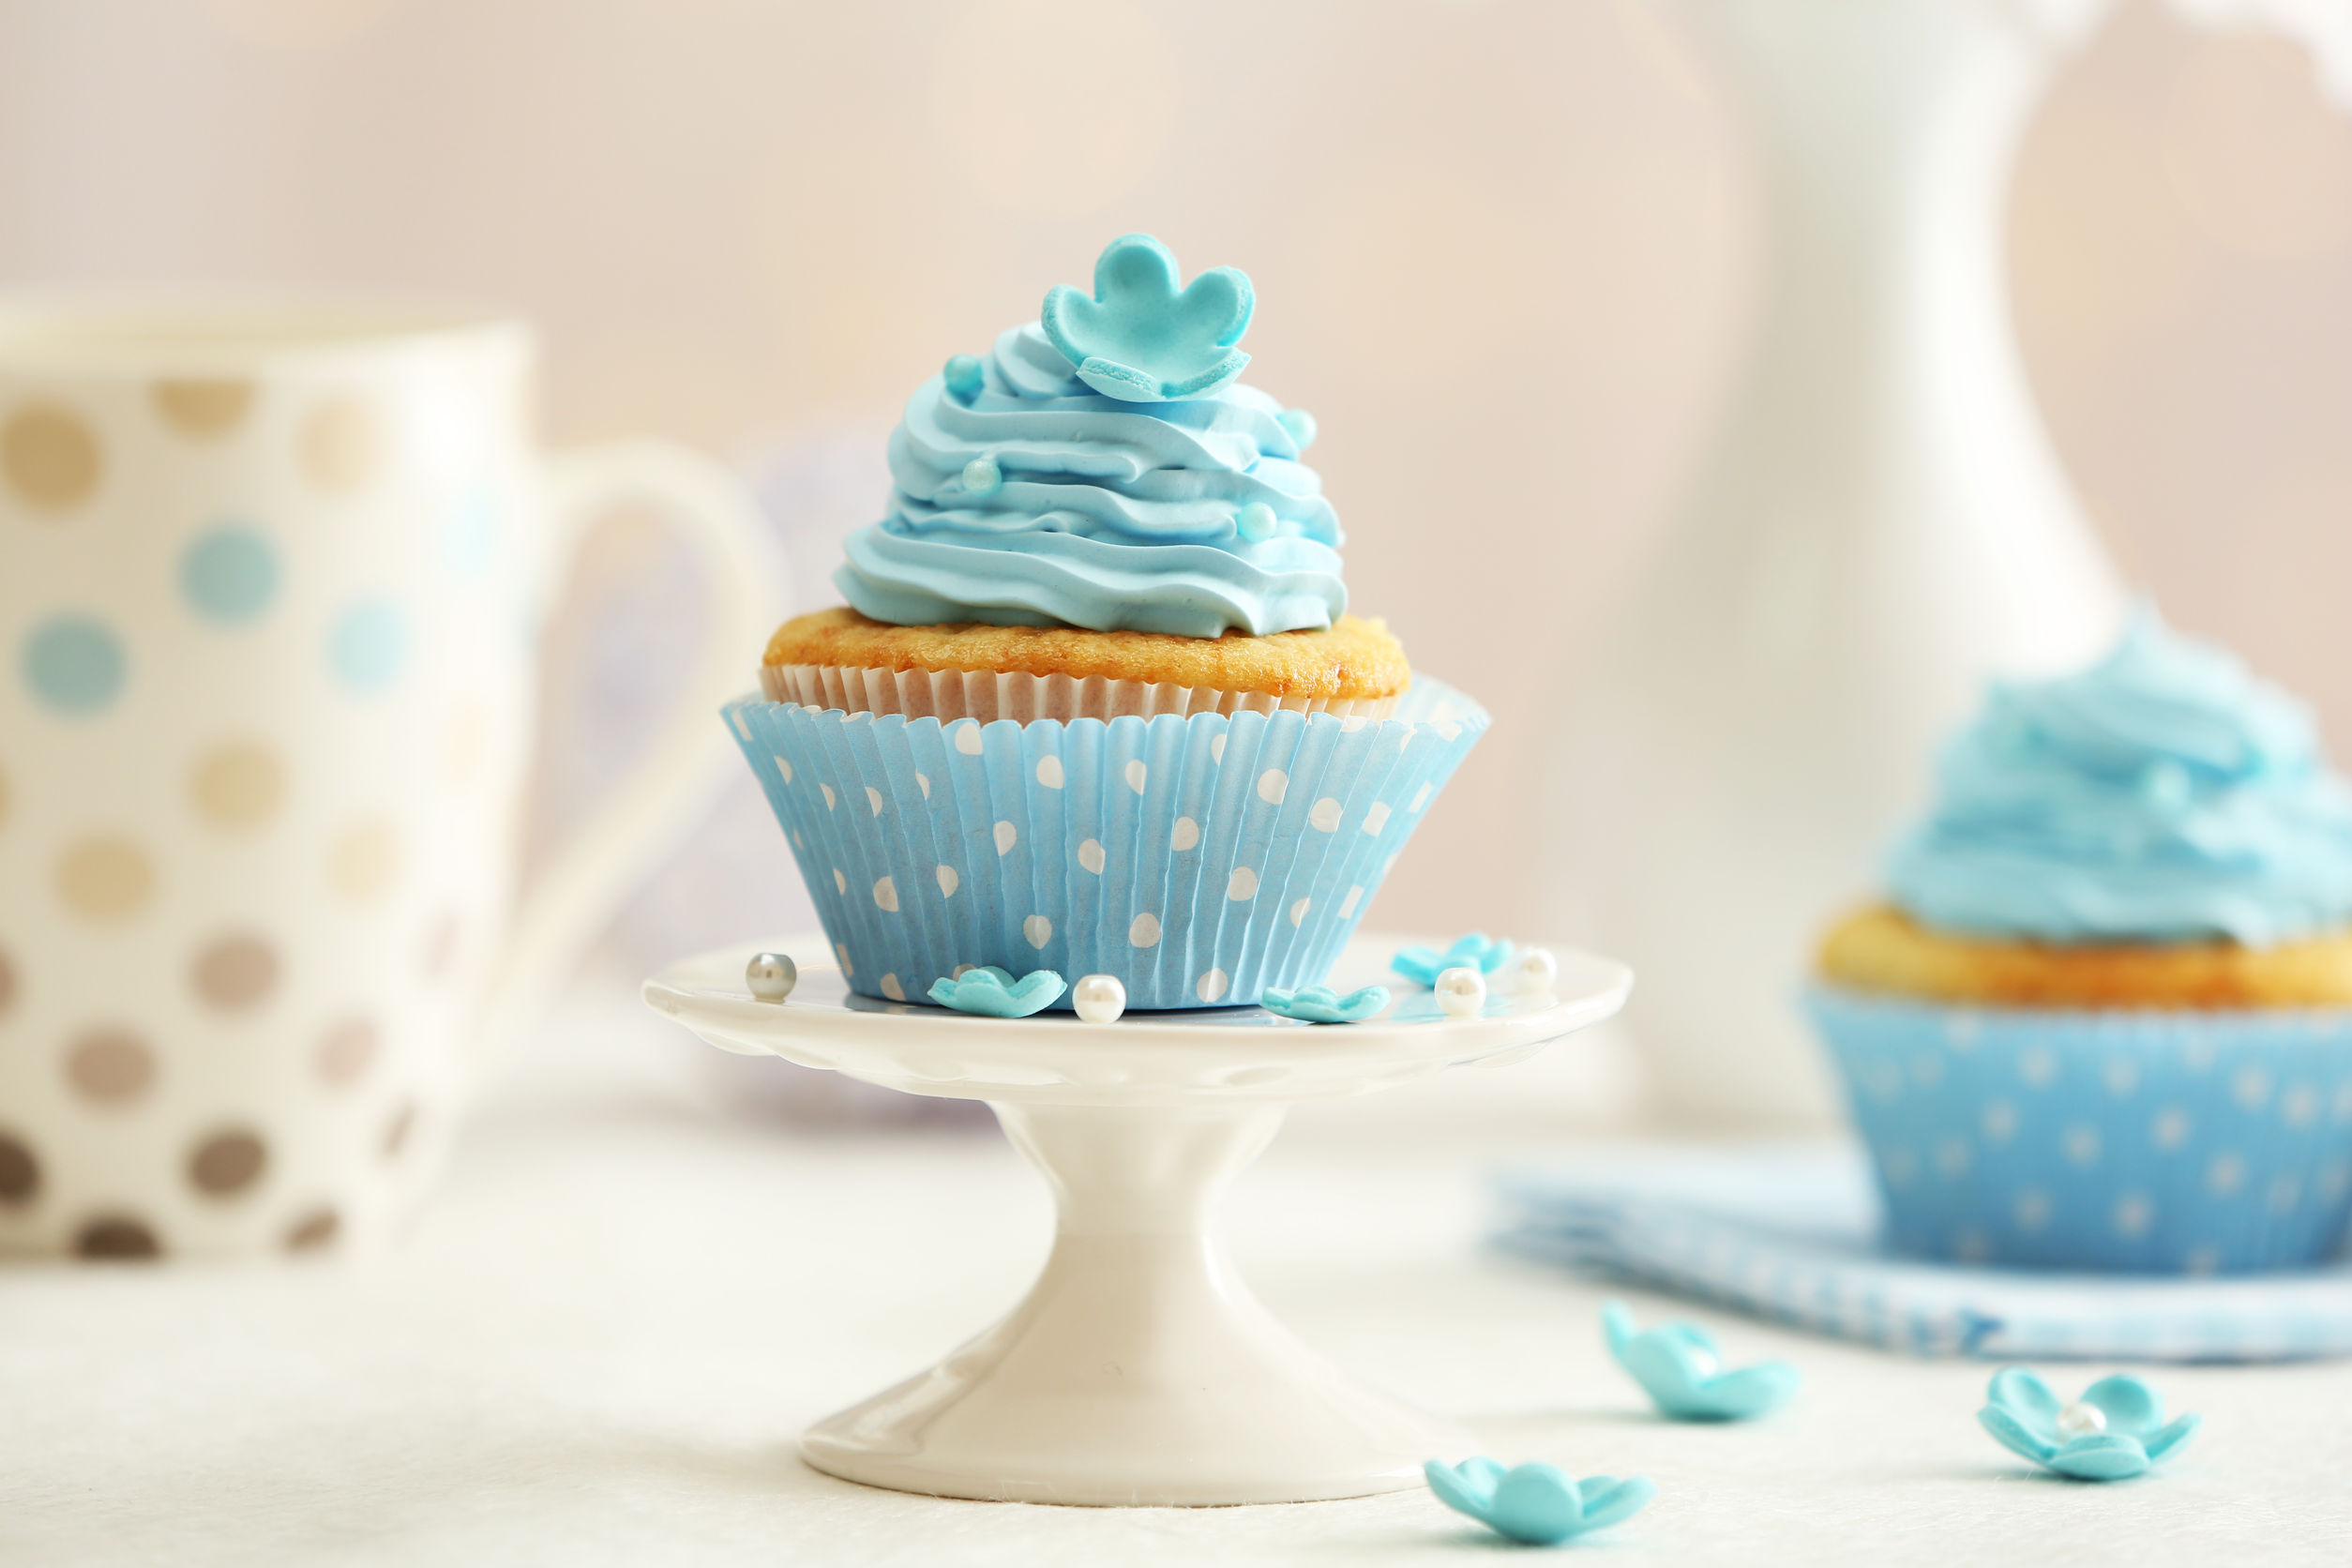 39135950 - delicious cupcakes on table on light background